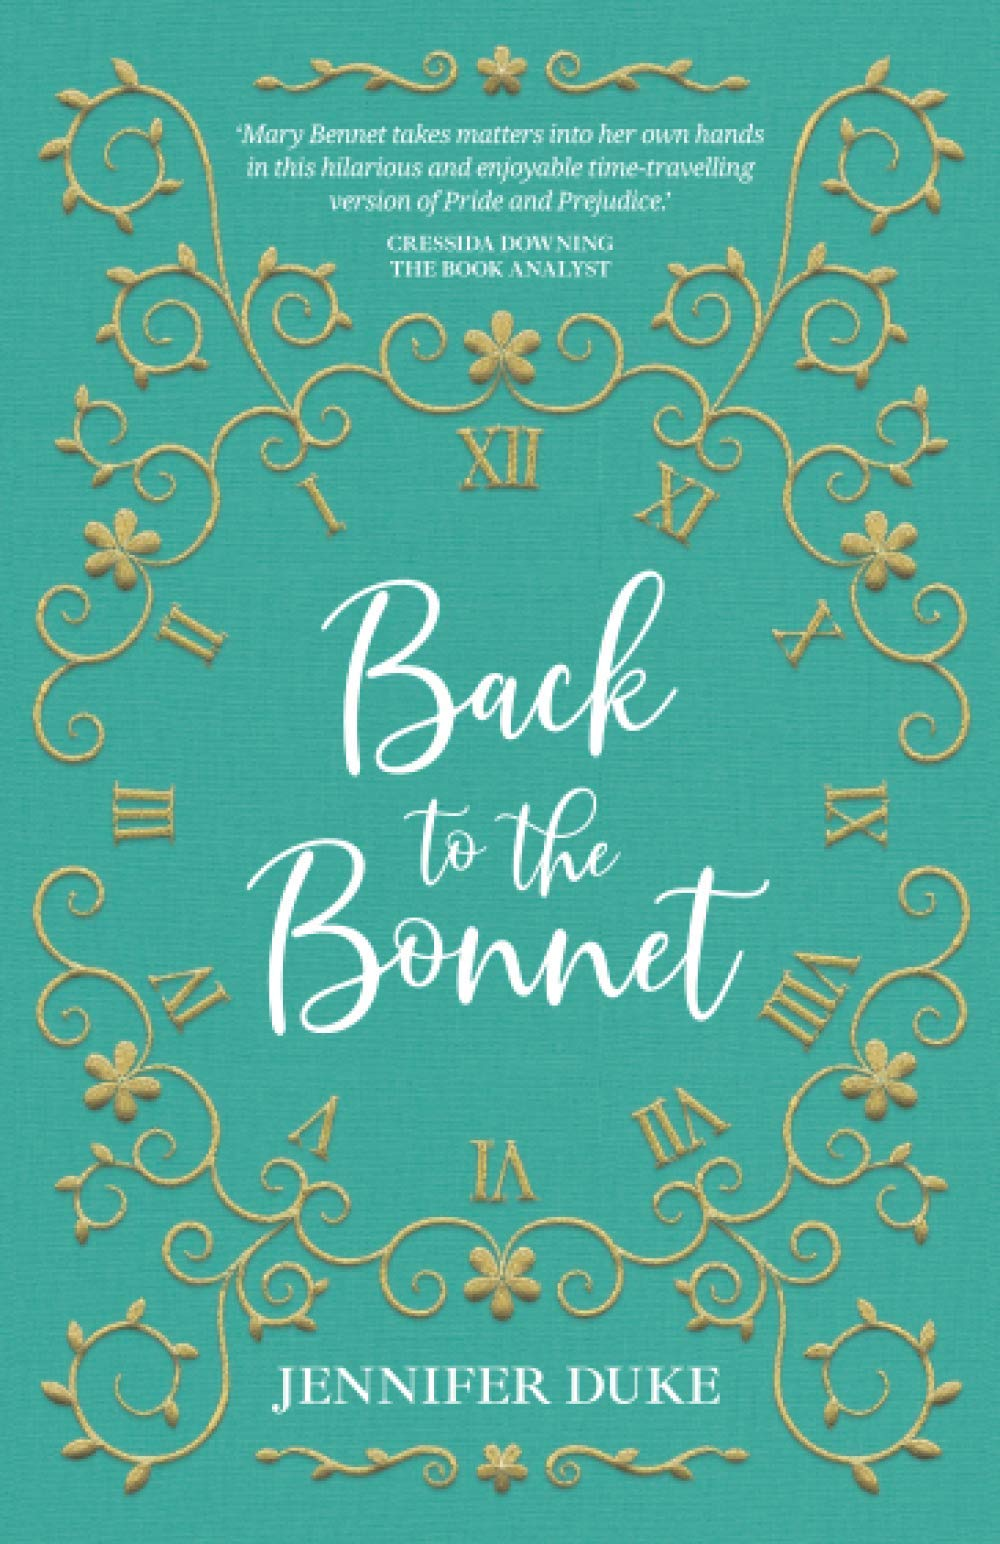 Back to the Bonnet by Jennifer Duke 2020